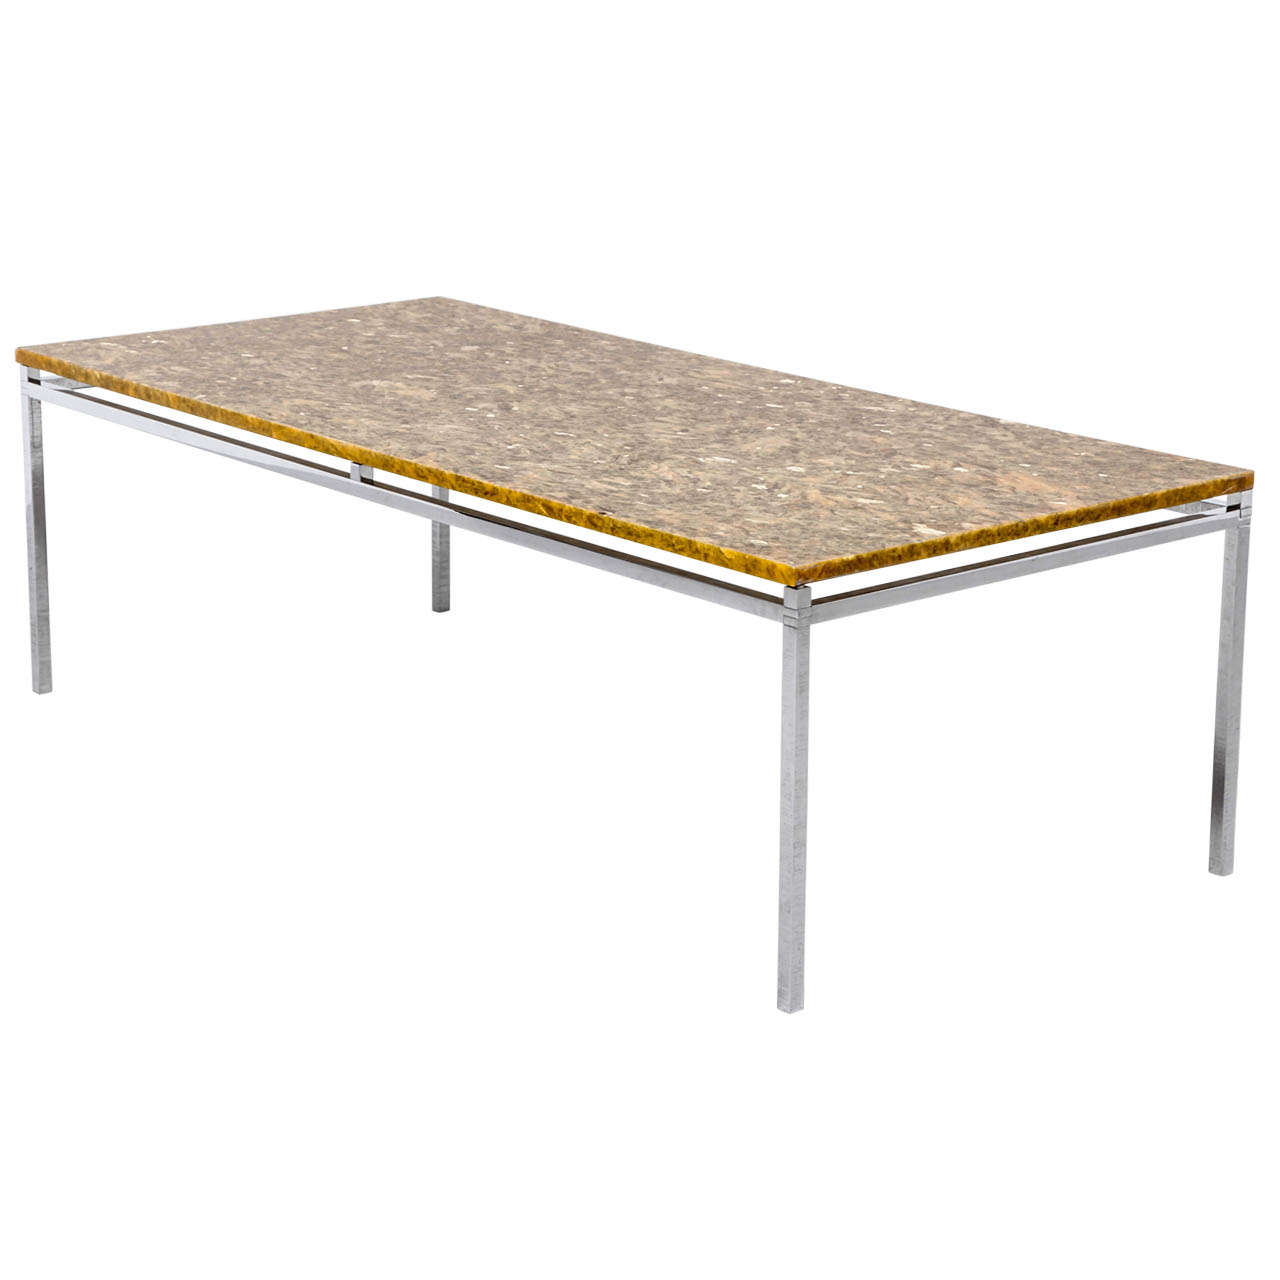 Florence knoll marble topped coffee table at 1stdibs Florence knoll coffee table